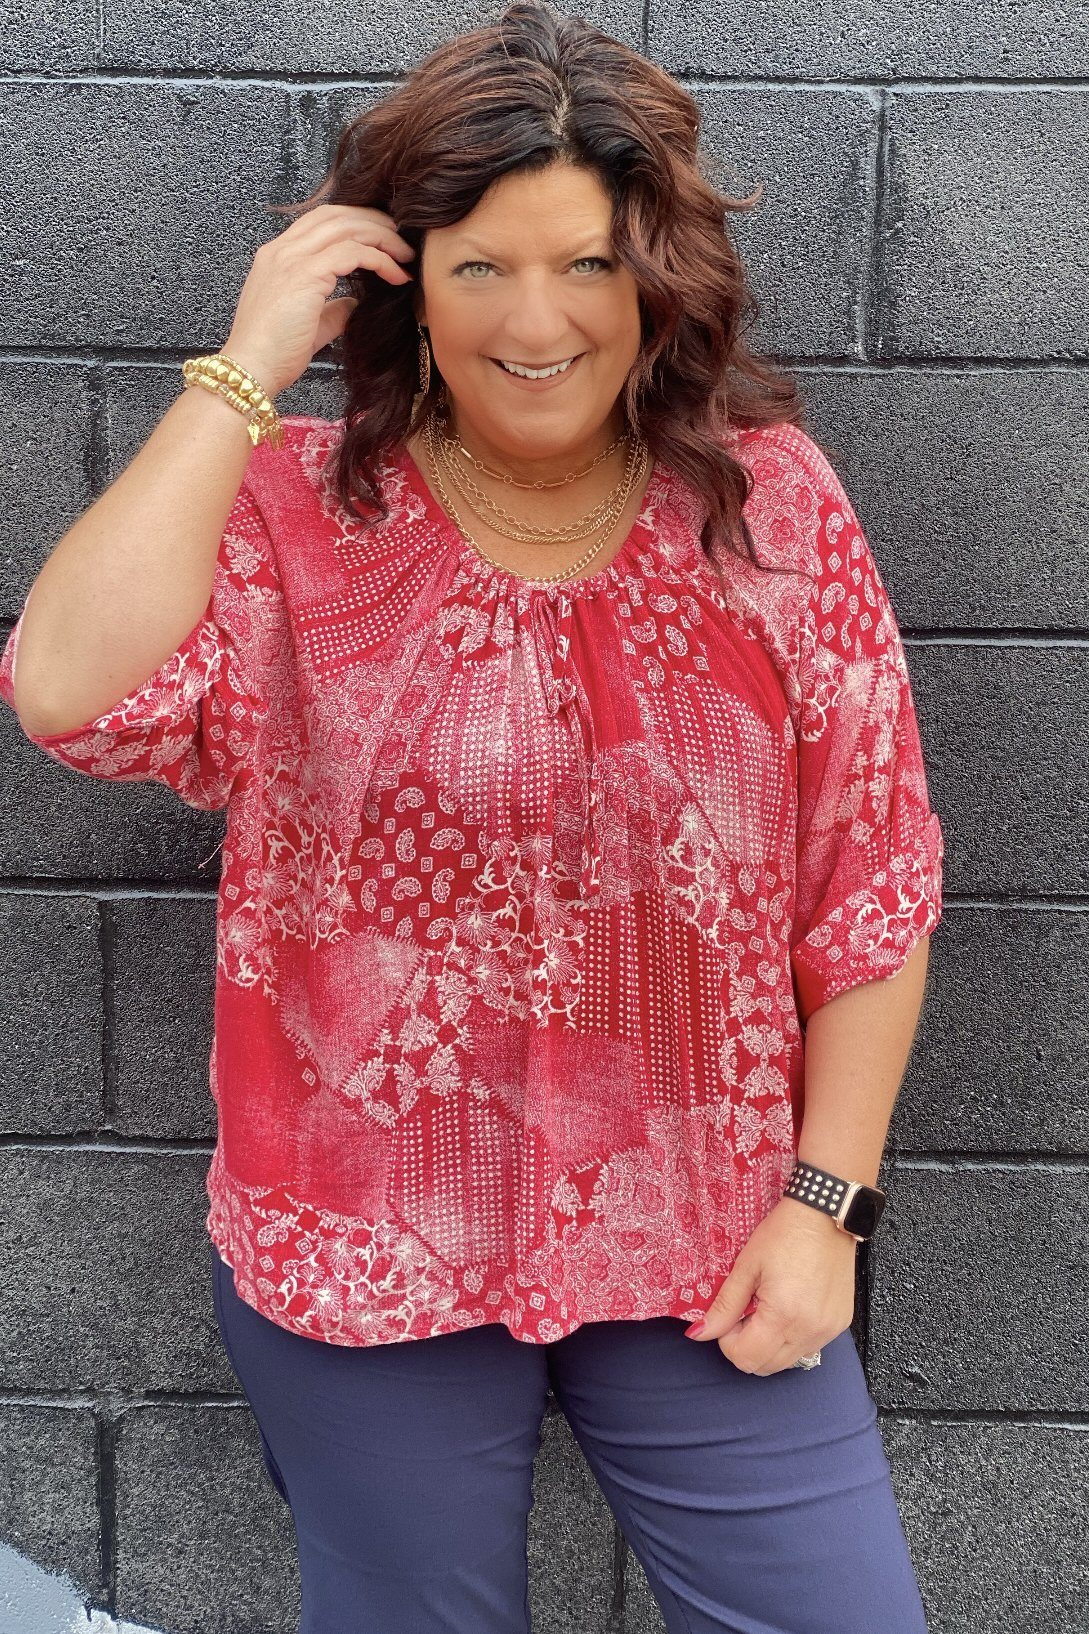 Paisley Blouse MISSY TOP SPECIAL ZAC & RACHEL